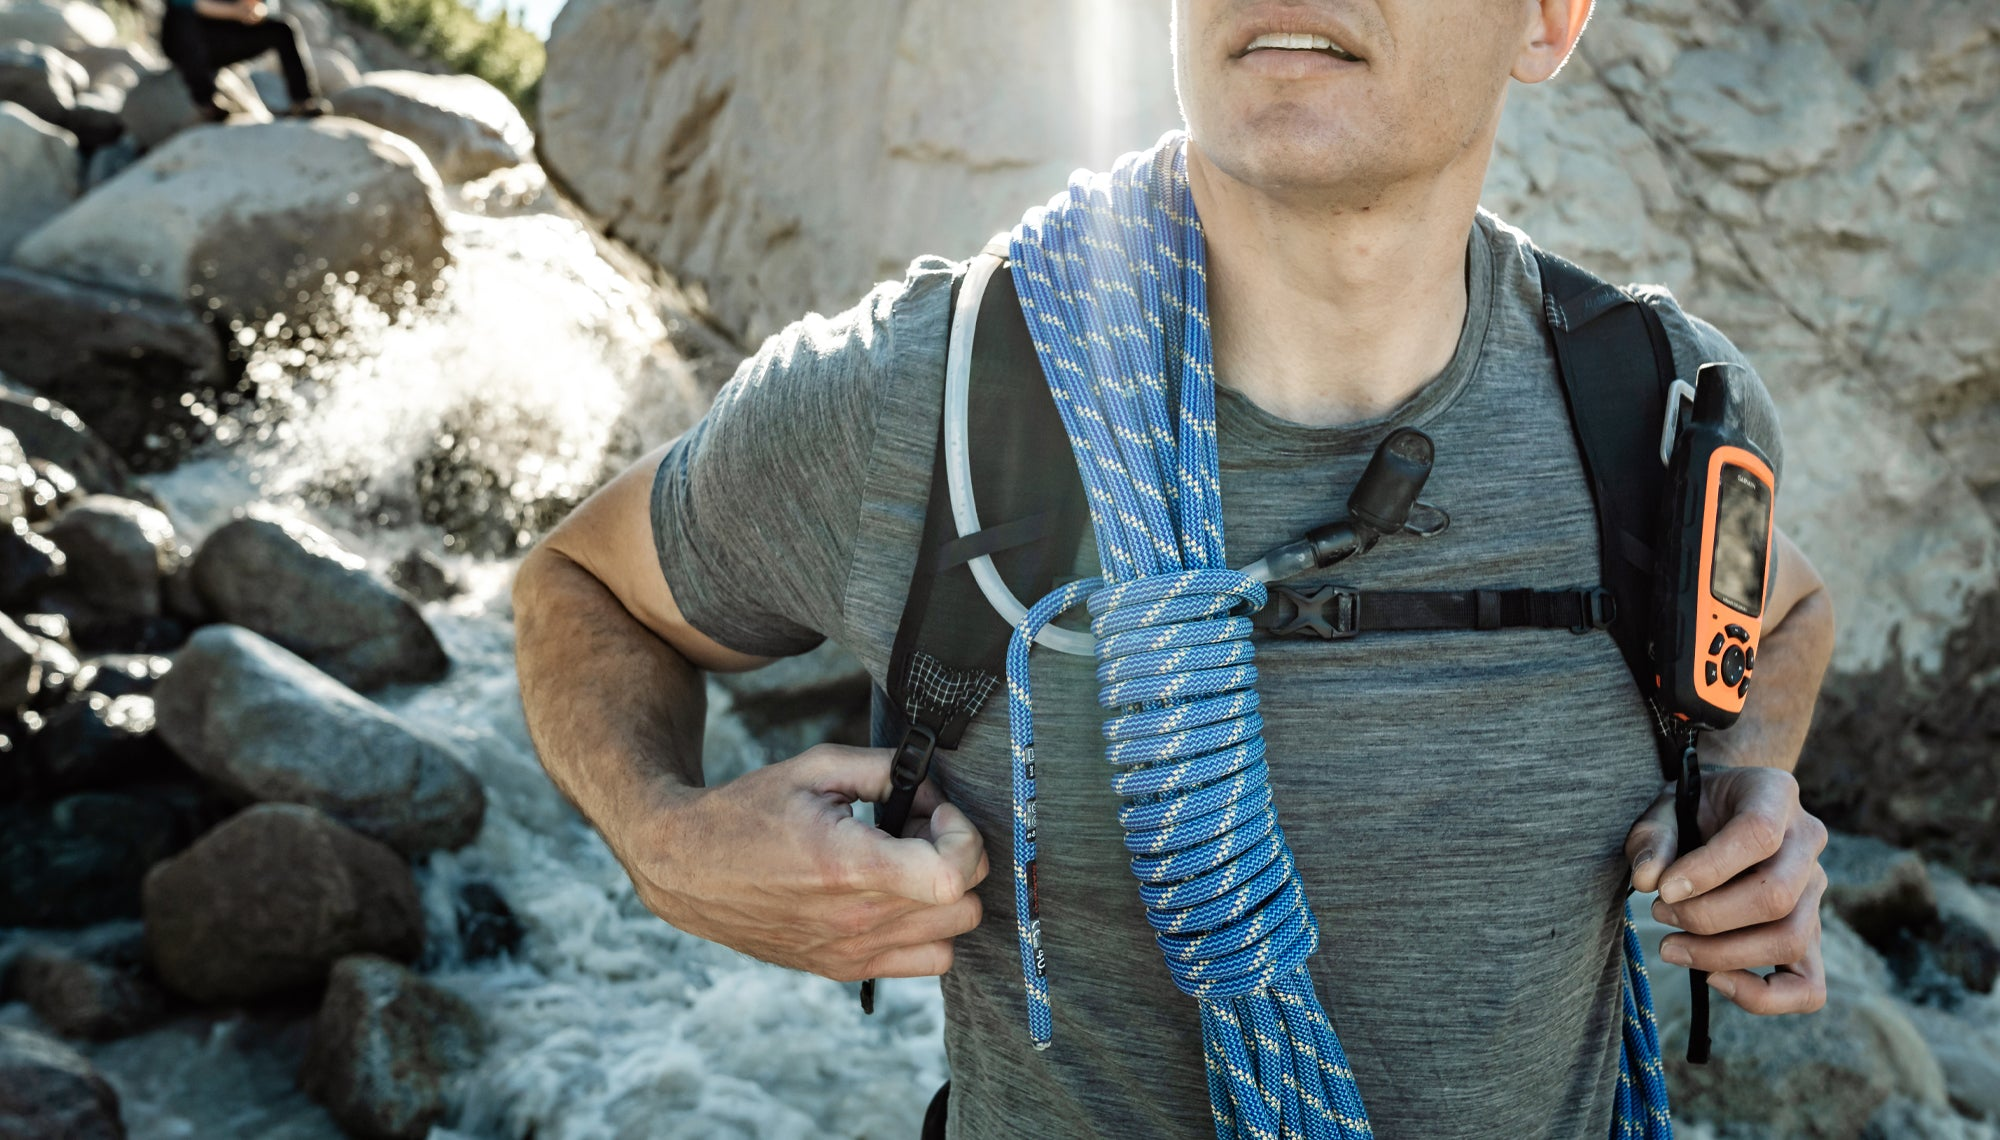 Close up view of backpack sternum strap on man outdoors